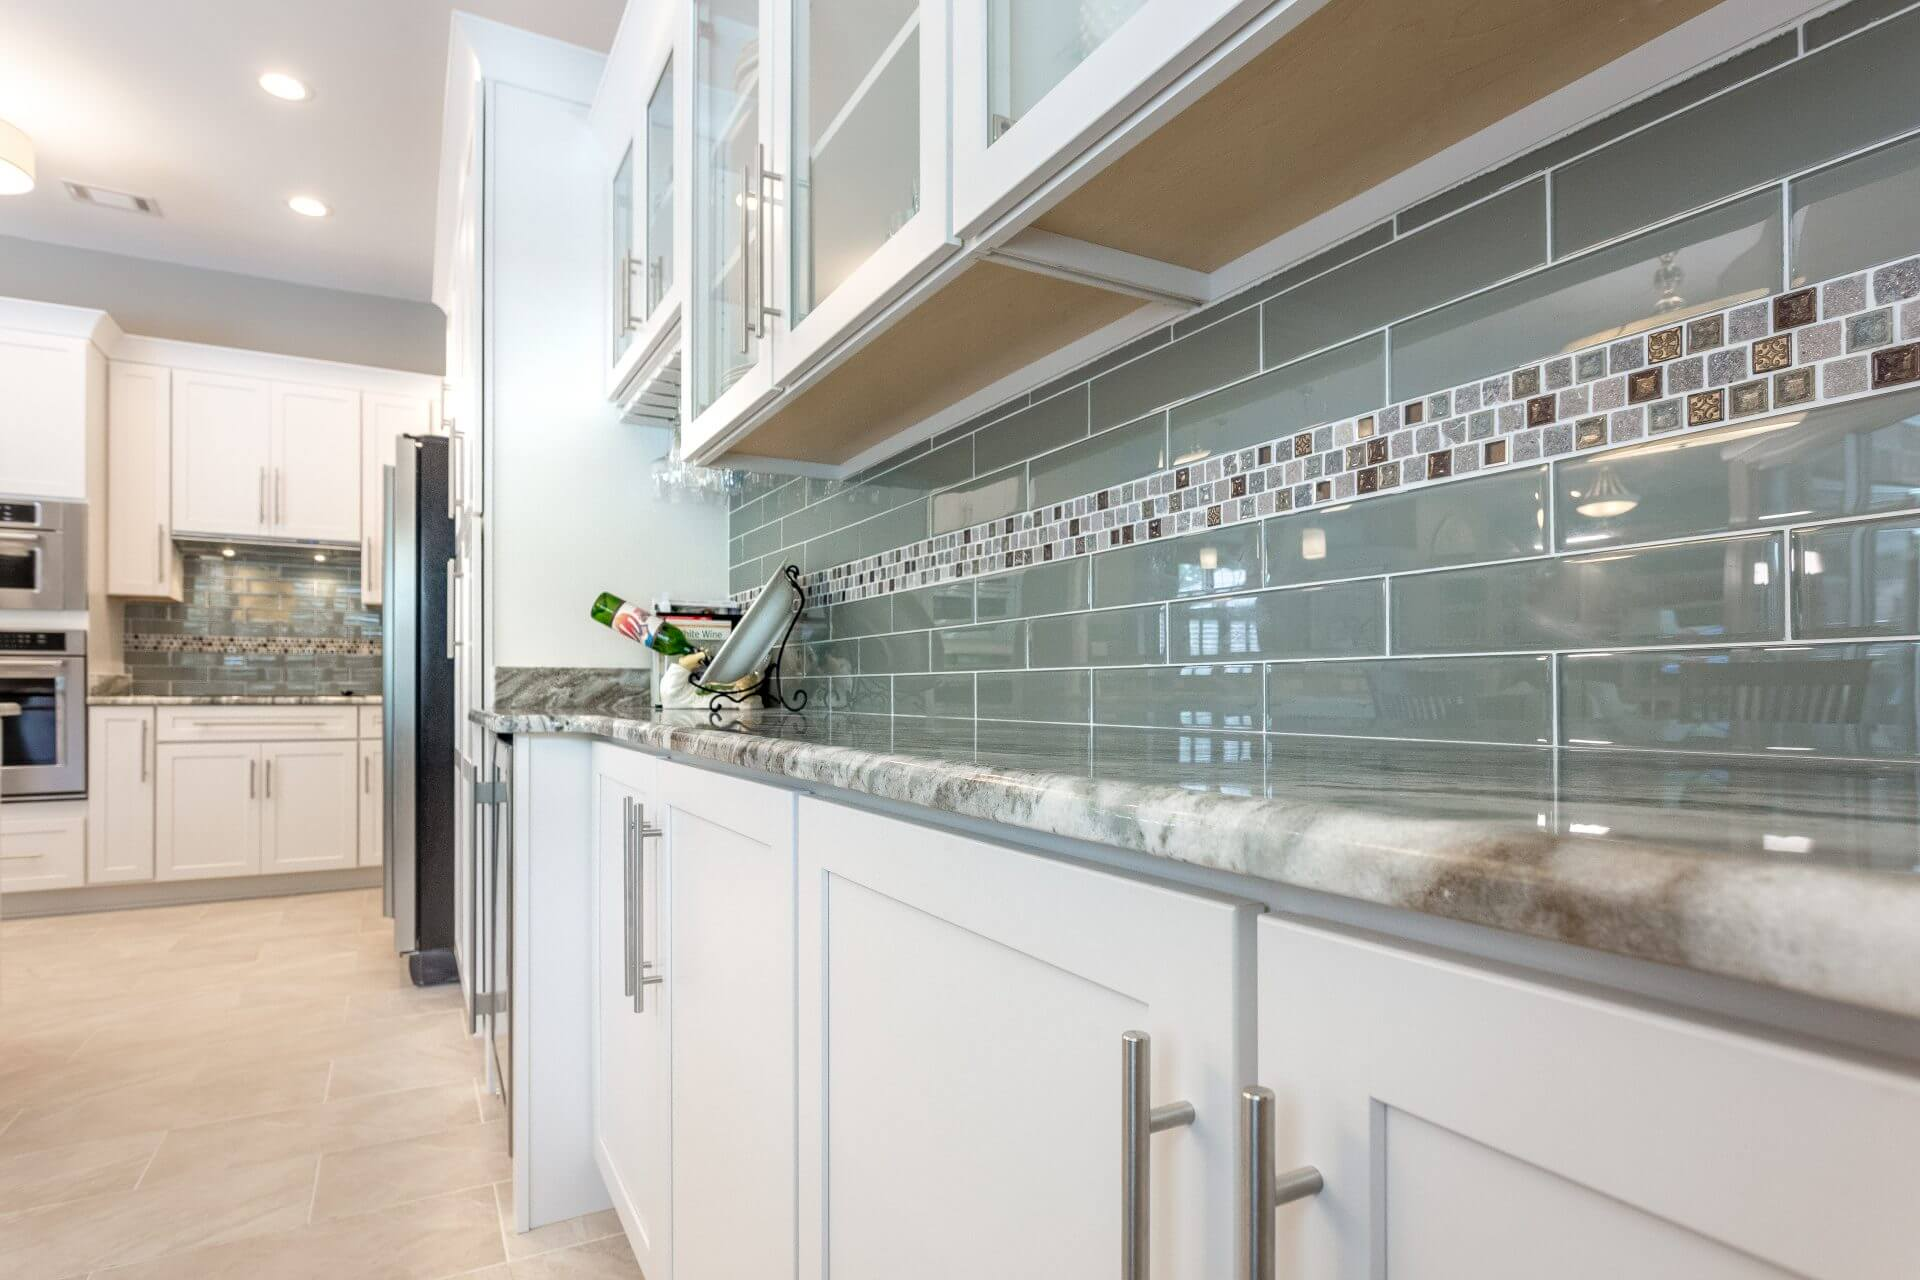 White shaker cabinets featuring a glass subway tile backsplash with tile insert, granite countertops and modern stainless steel pulls